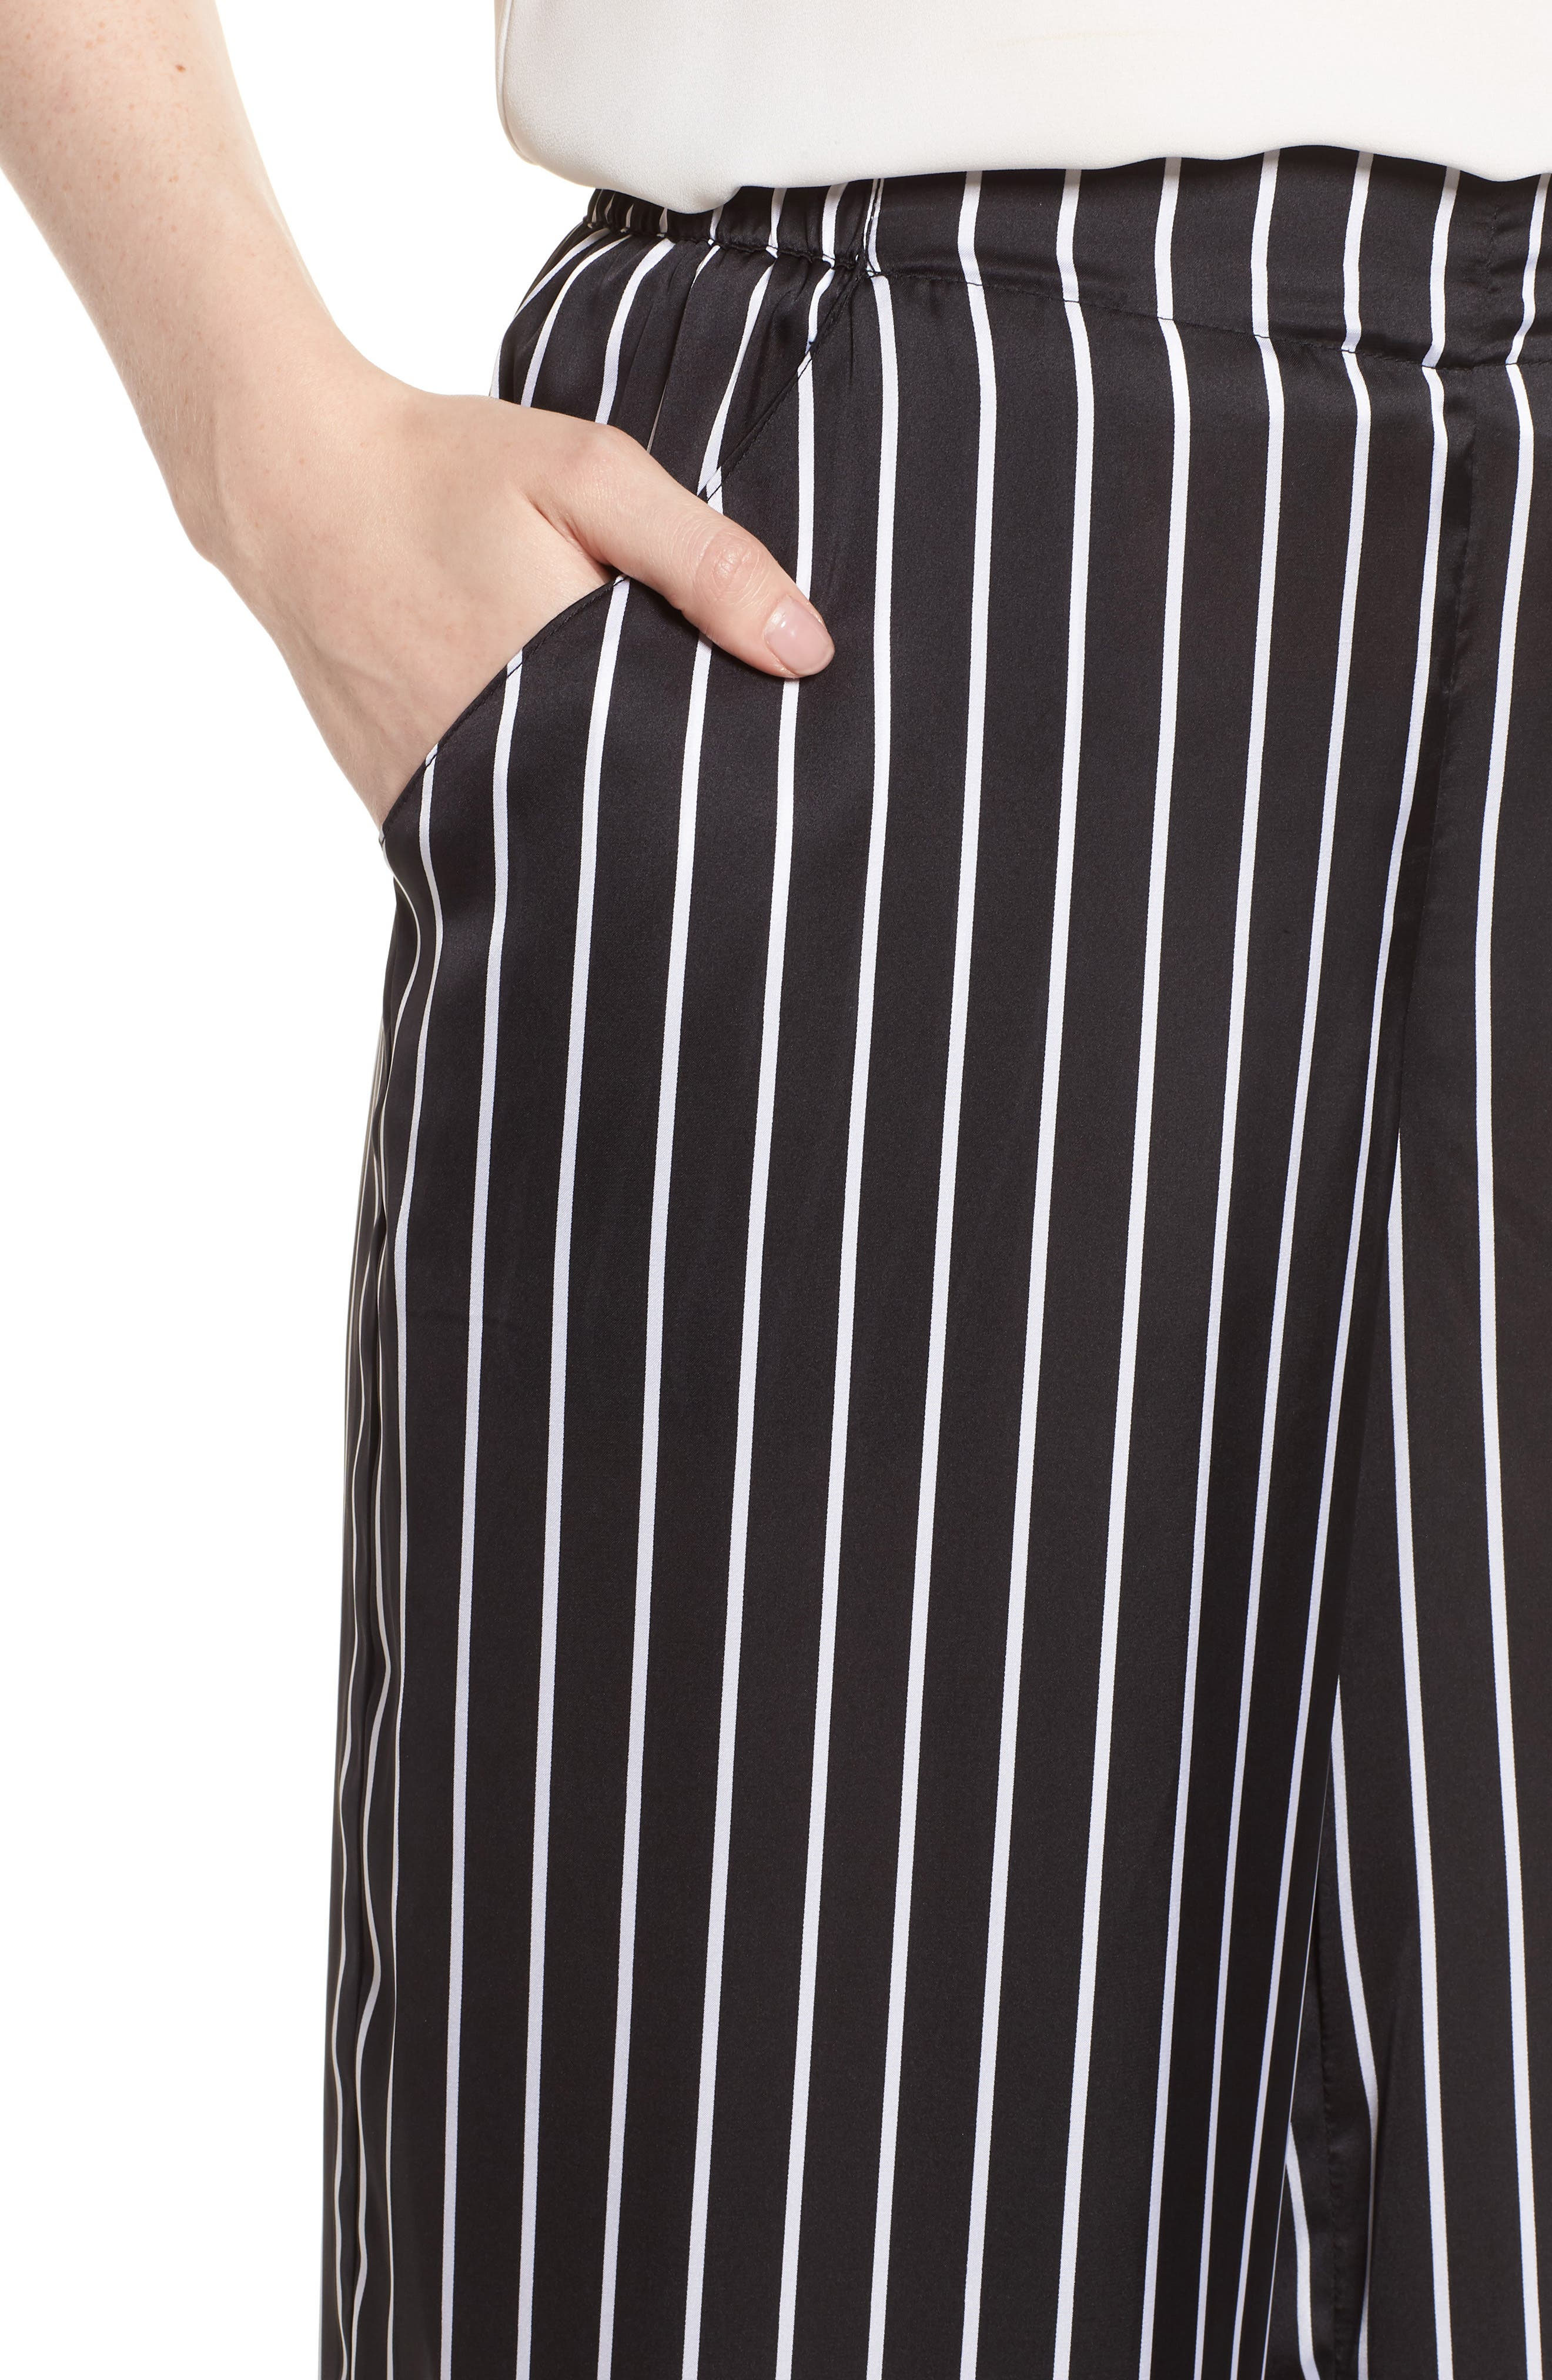 Kenneth Cole Wide Leg Pants,                             Alternate thumbnail 4, color,                             STREET STRIPE BLACK